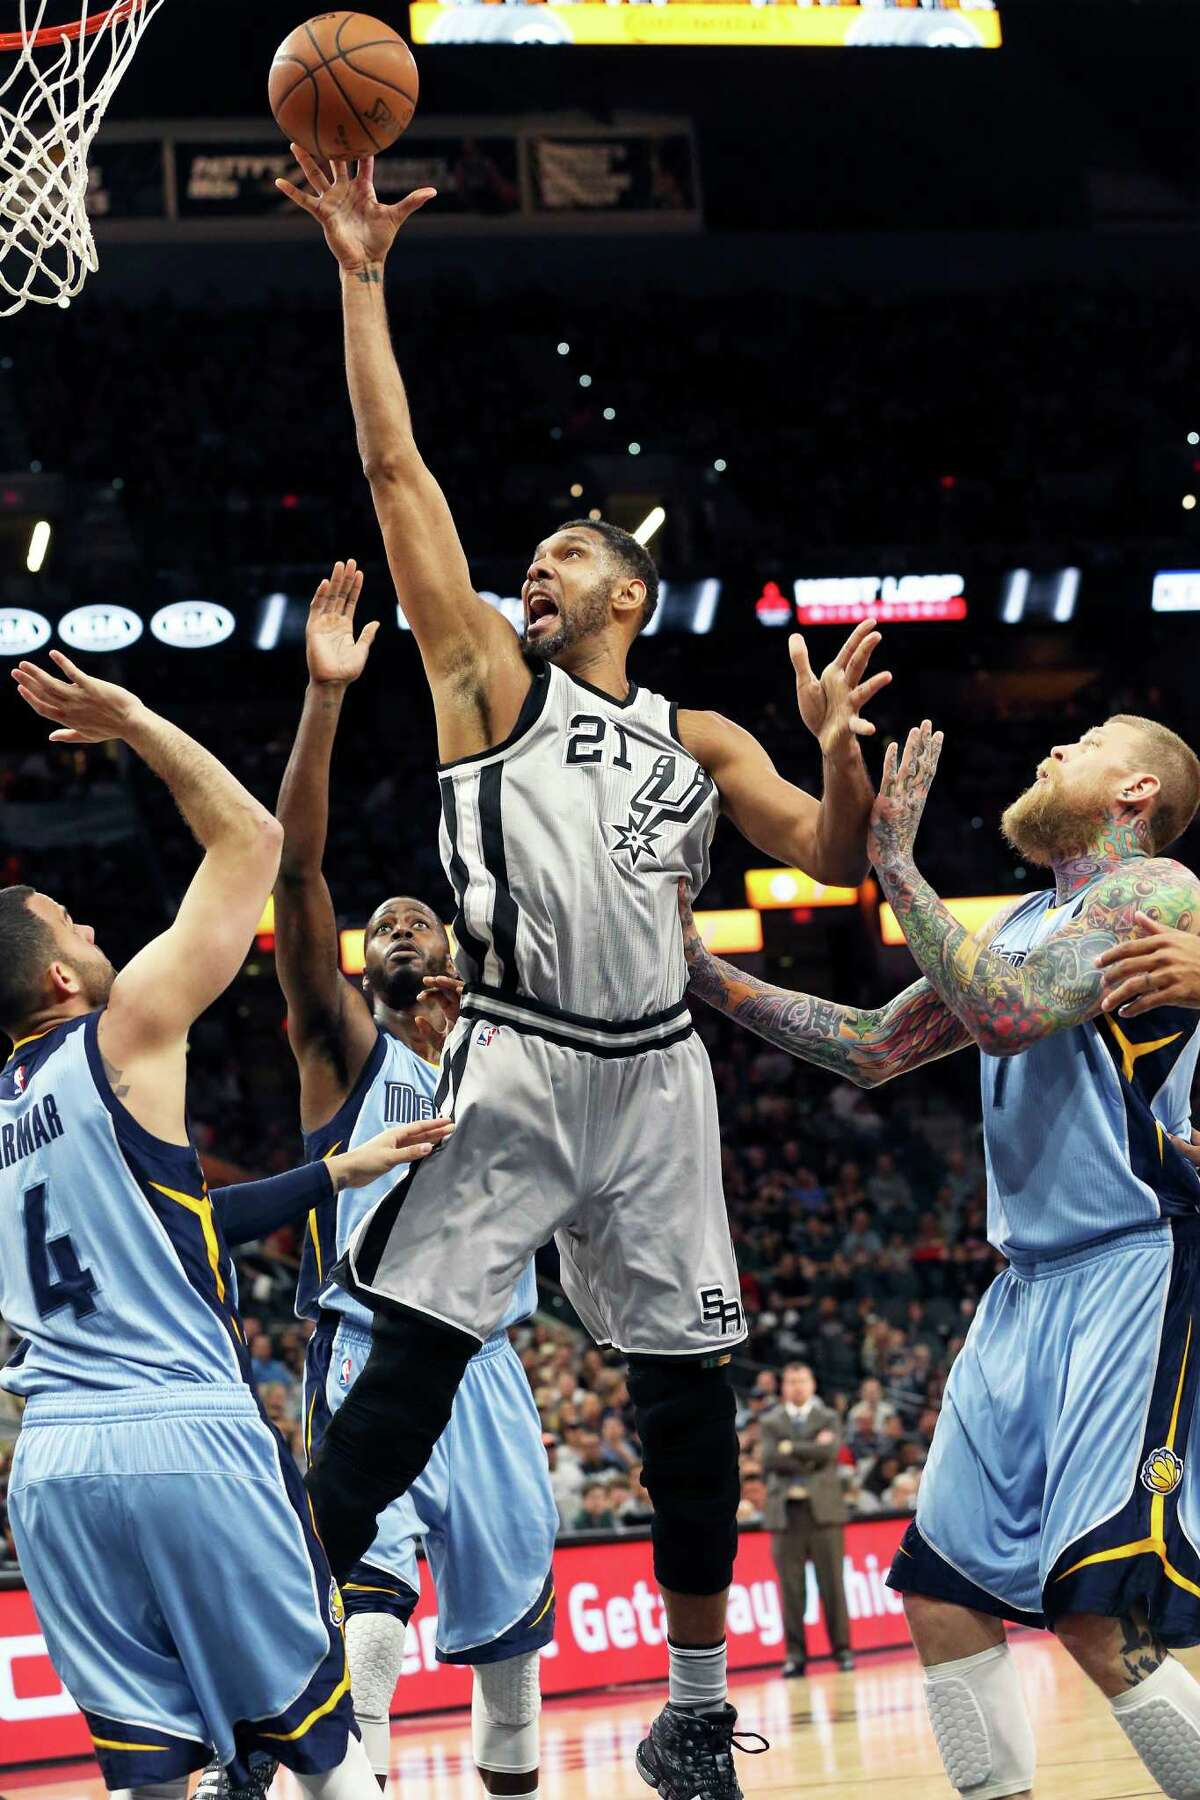 Tim Duncan gets away from Chris Andersoen and takes advantage of a mismatch with Jordan Farmar as the Spurs host the Grizzlies at the AT&T Center on March 25, 2016.